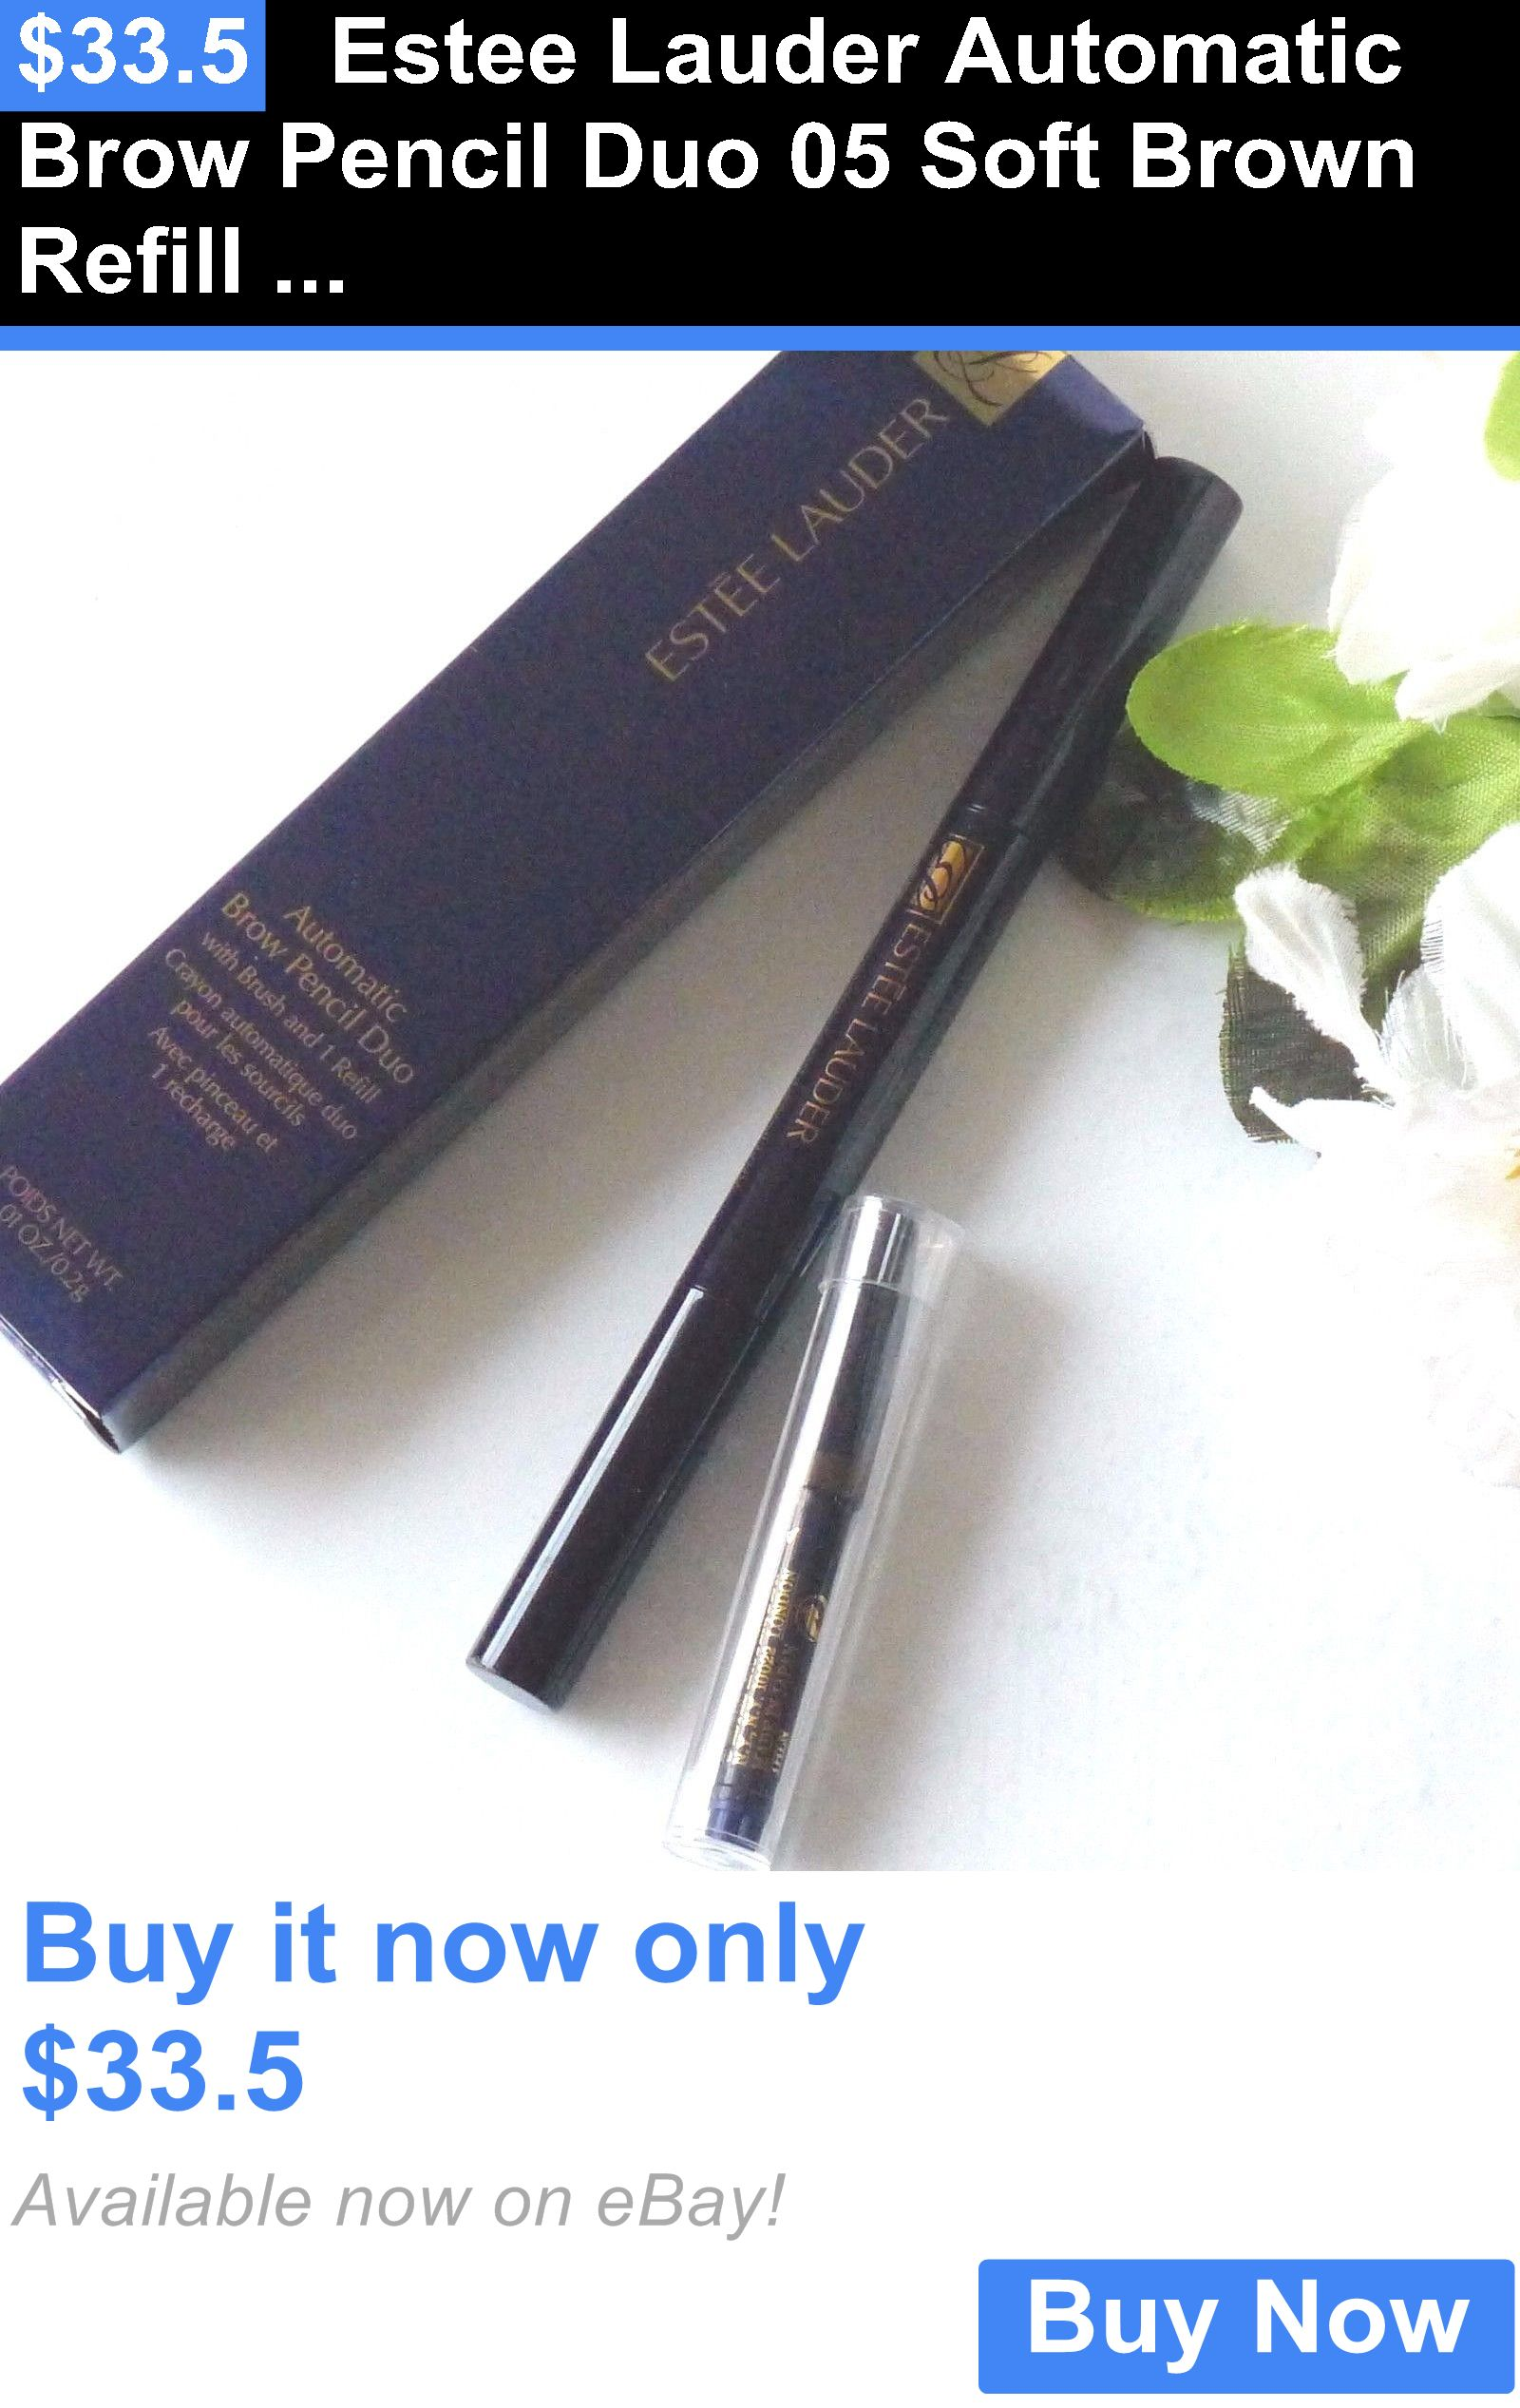 Eyebrow Liner and Definition: Estee Lauder Automatic Brow Pencil ...